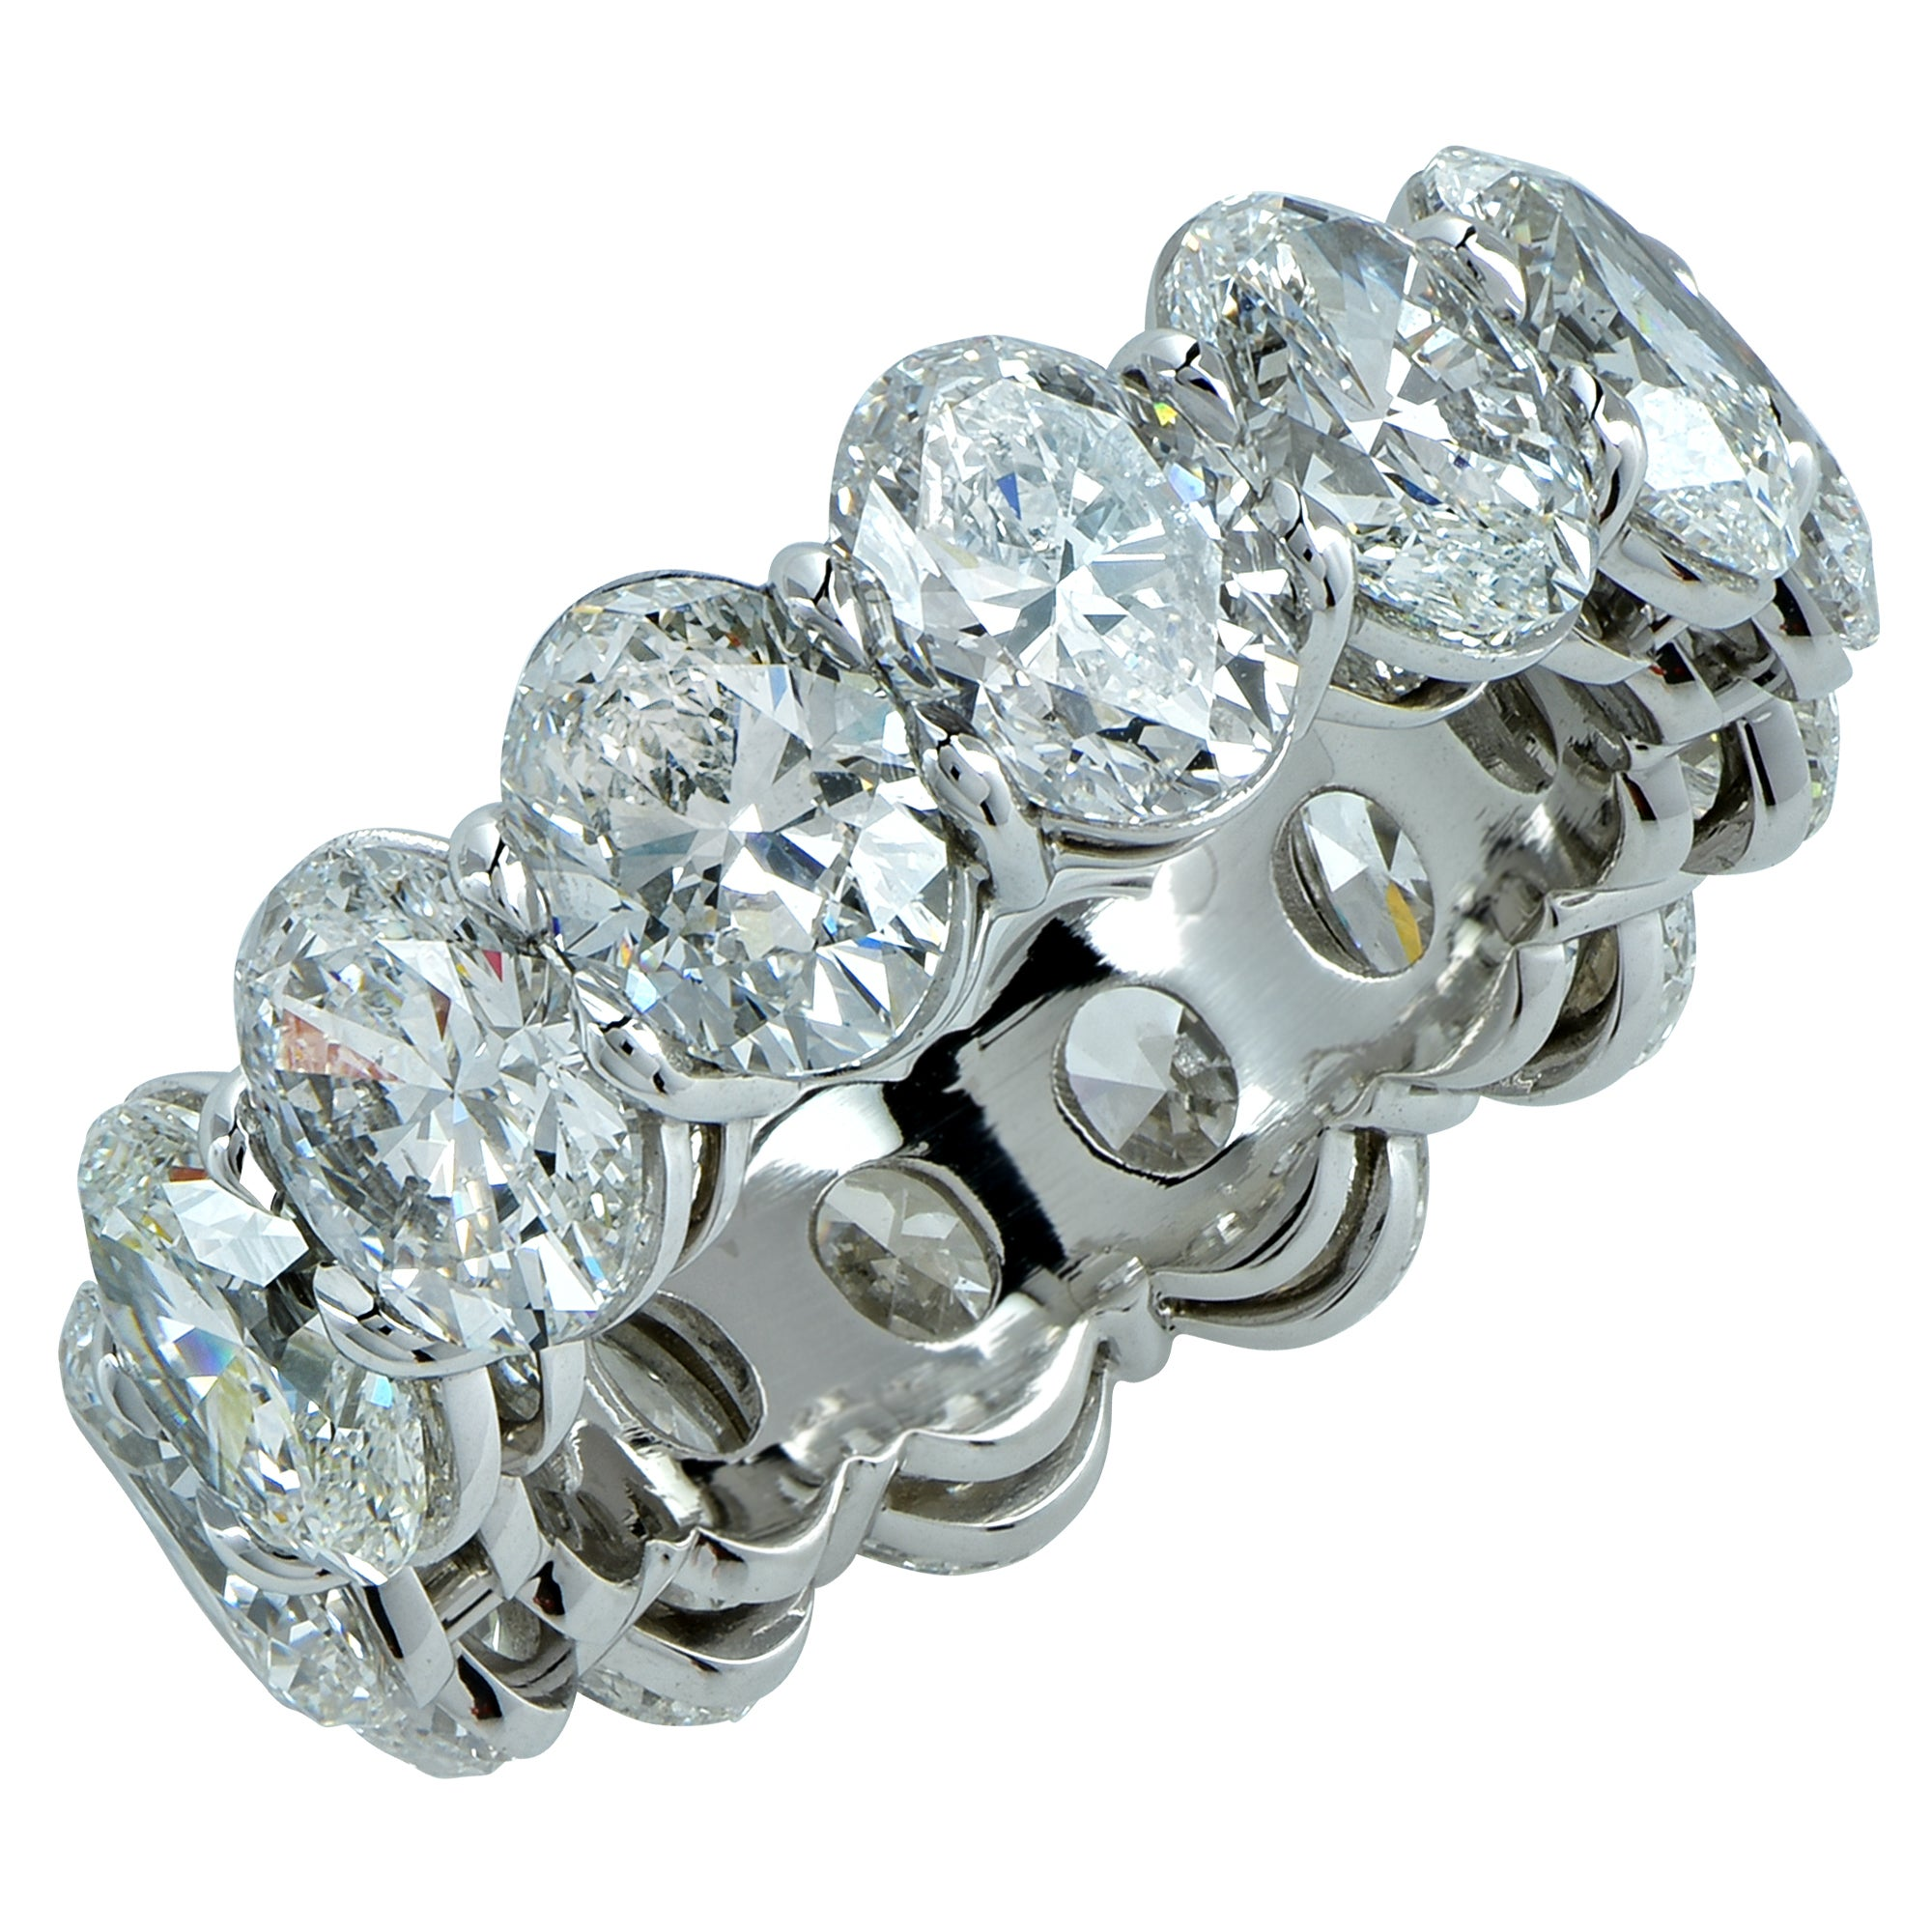 Vivid Diamonds GIA Certified 9.97 Carat Oval Cut Diamond Platinum Eternity Band